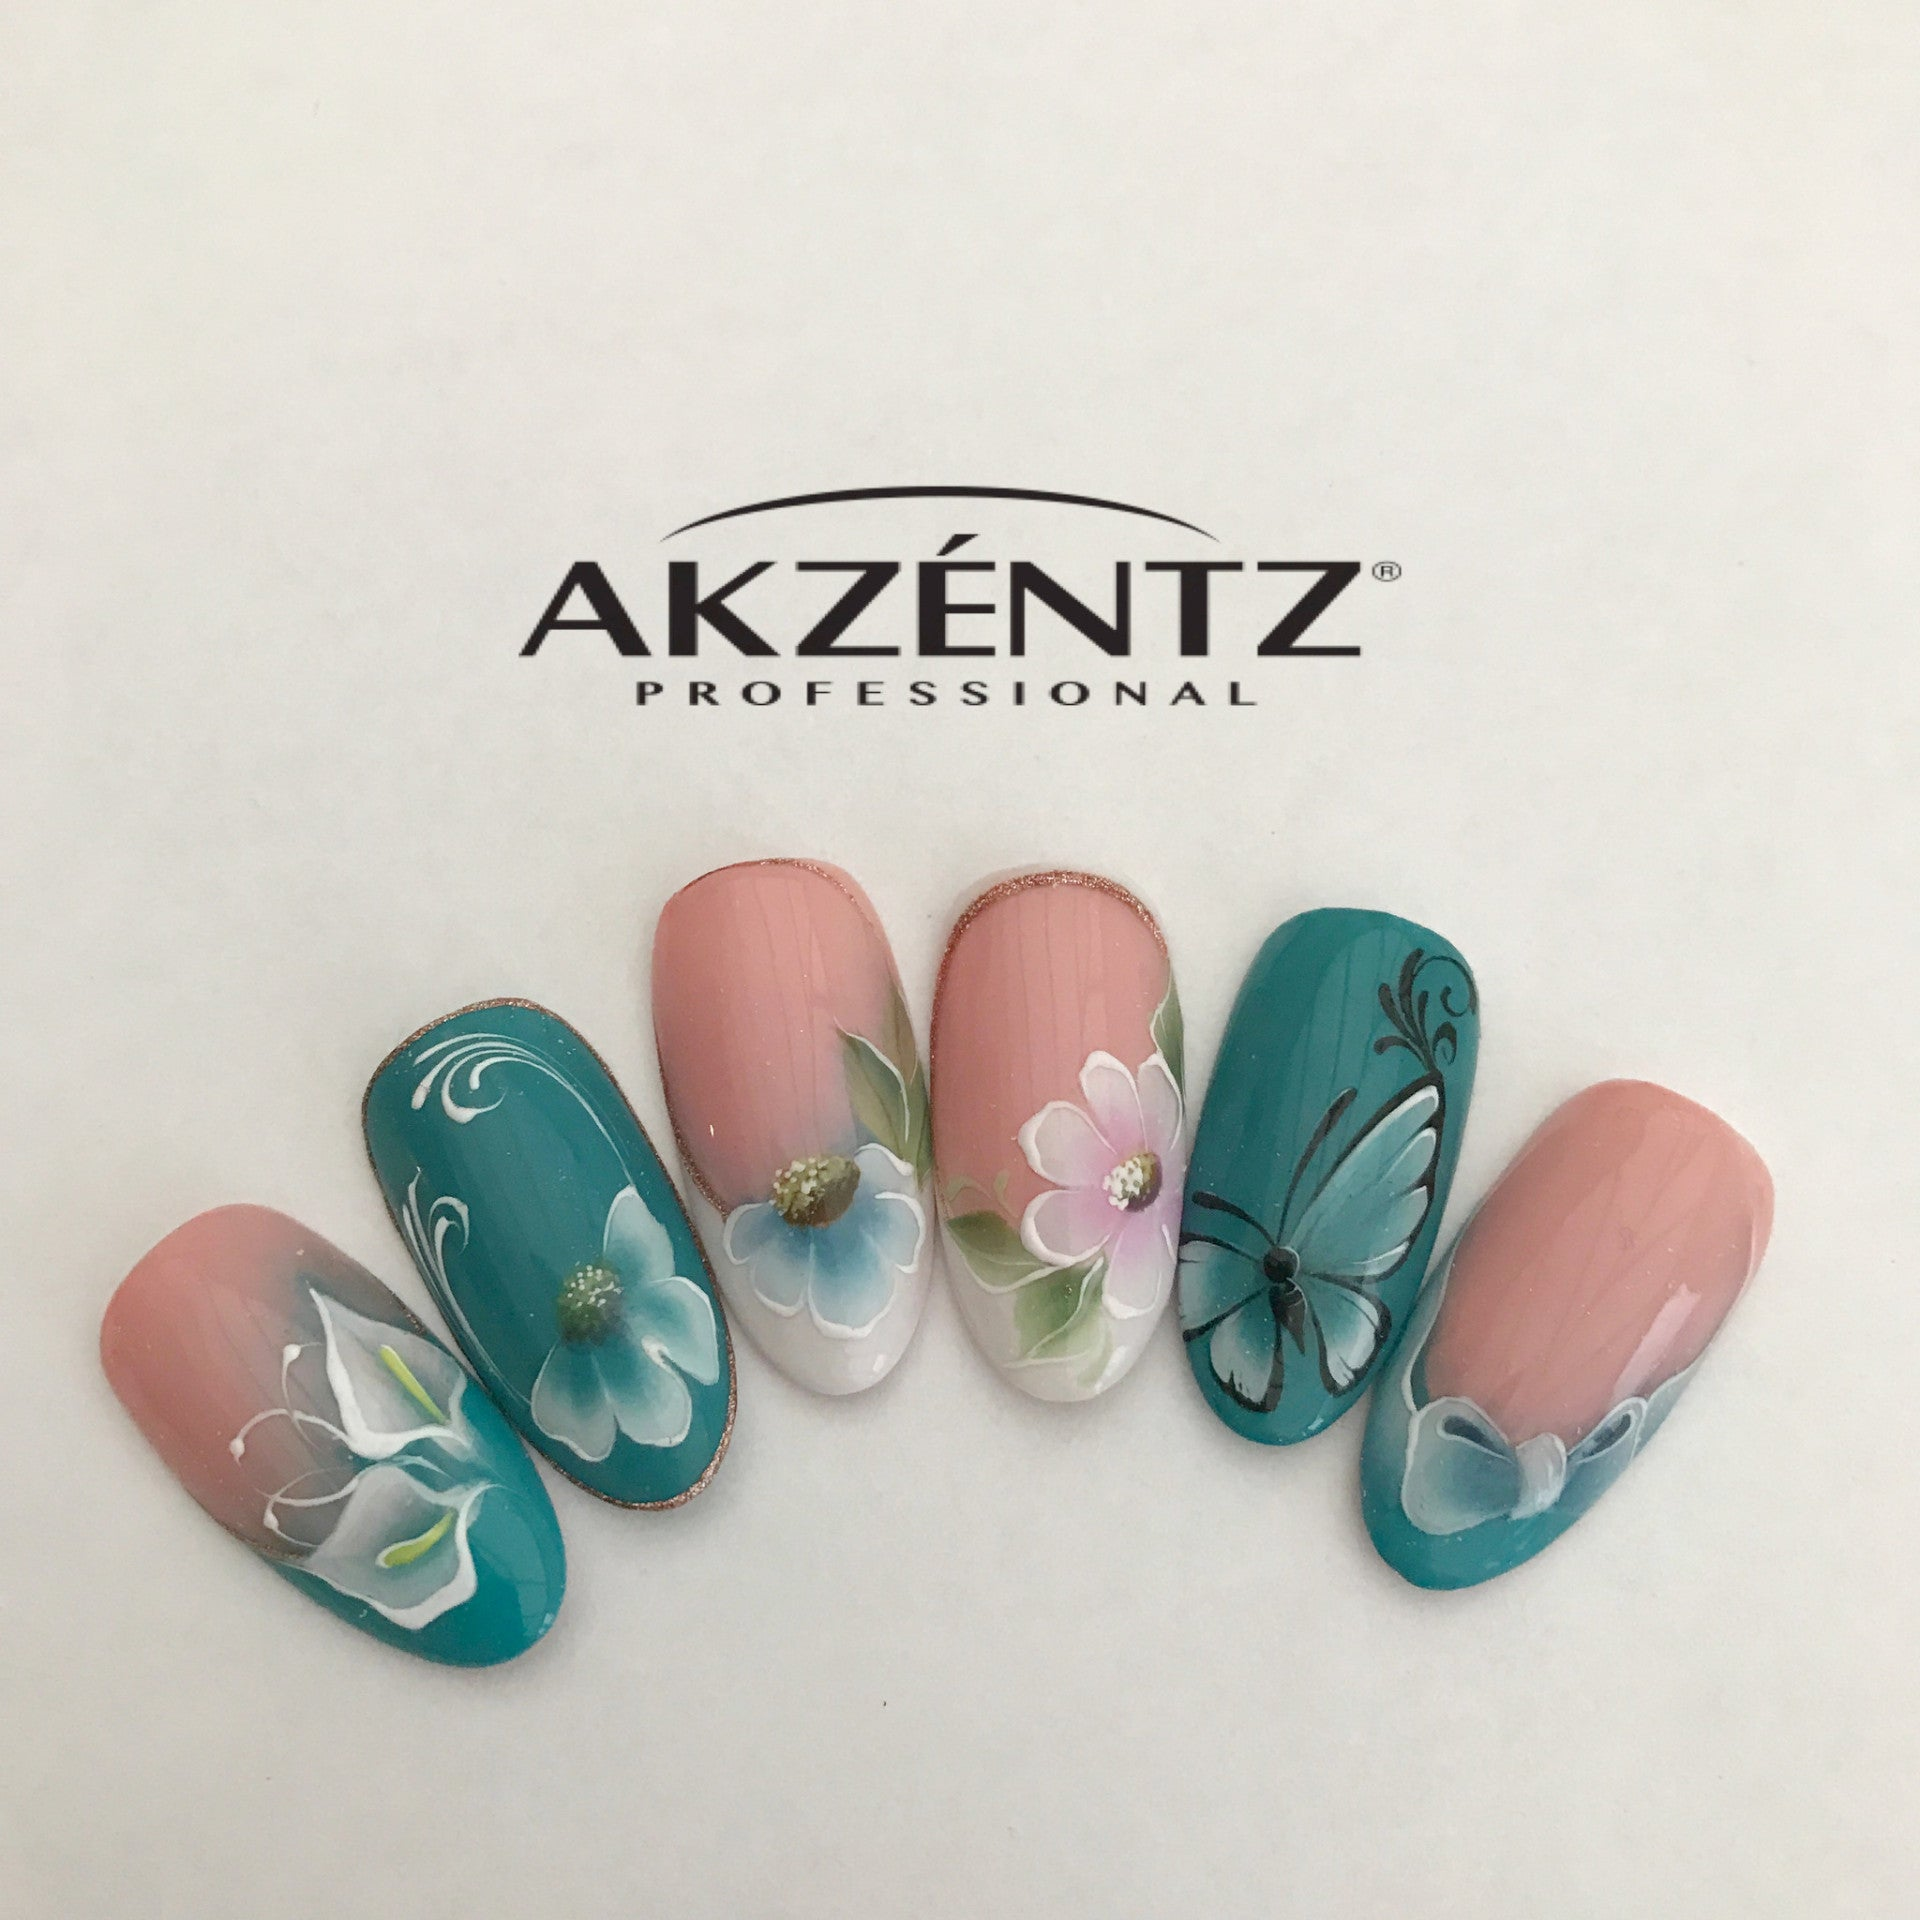 Akzentz Gel Play One Stroke Design Class Wales Hazel Dixon Nail